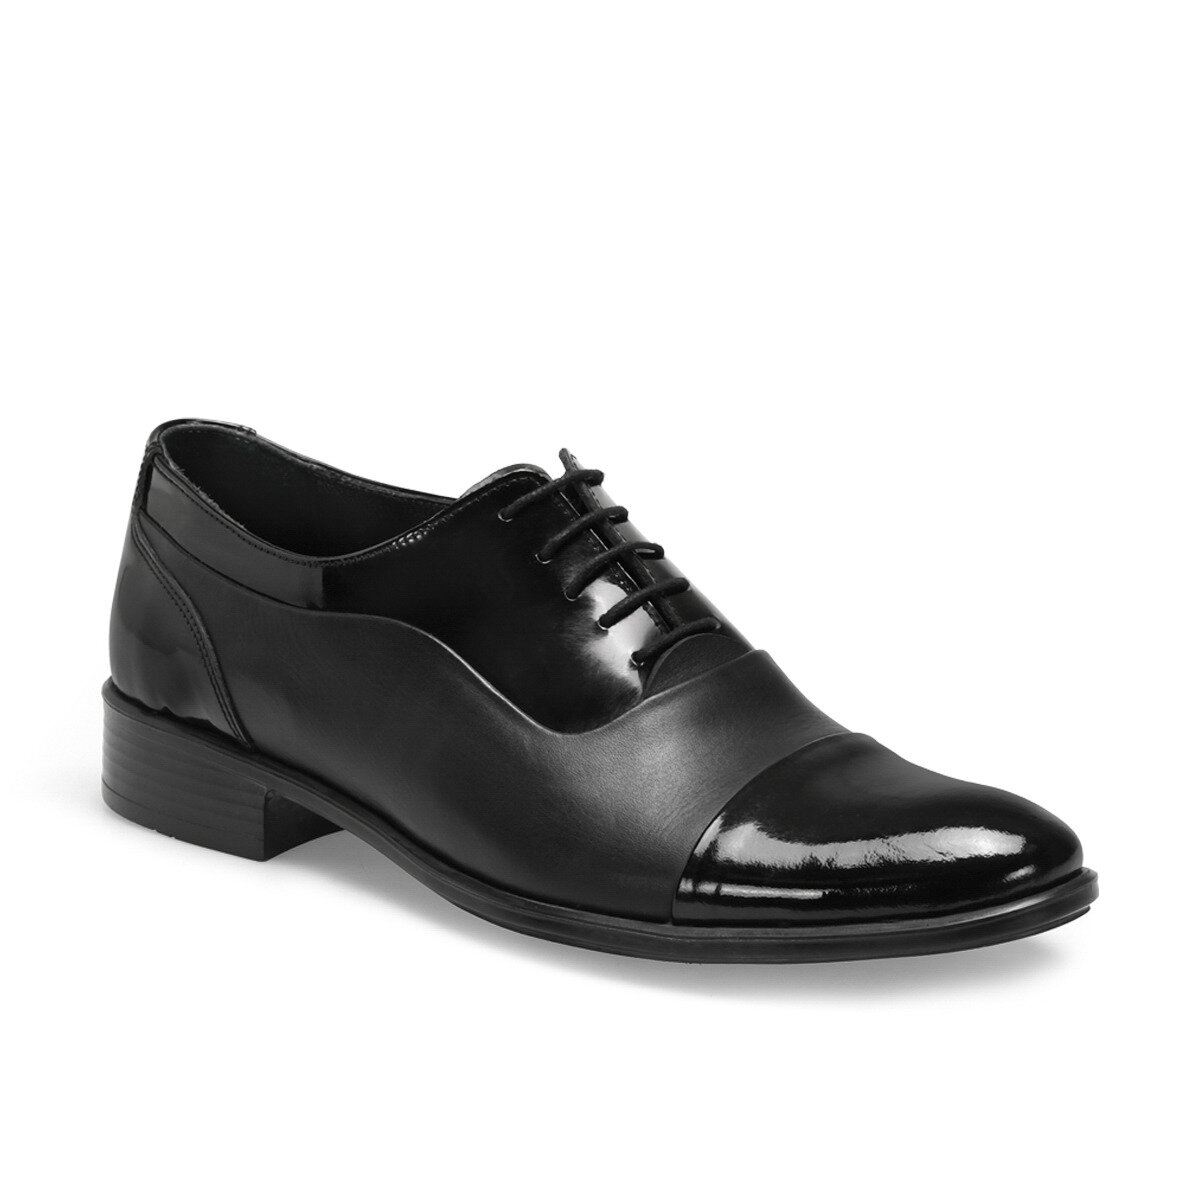 FLO 409 Black Male Maskaret Shoes Garamond